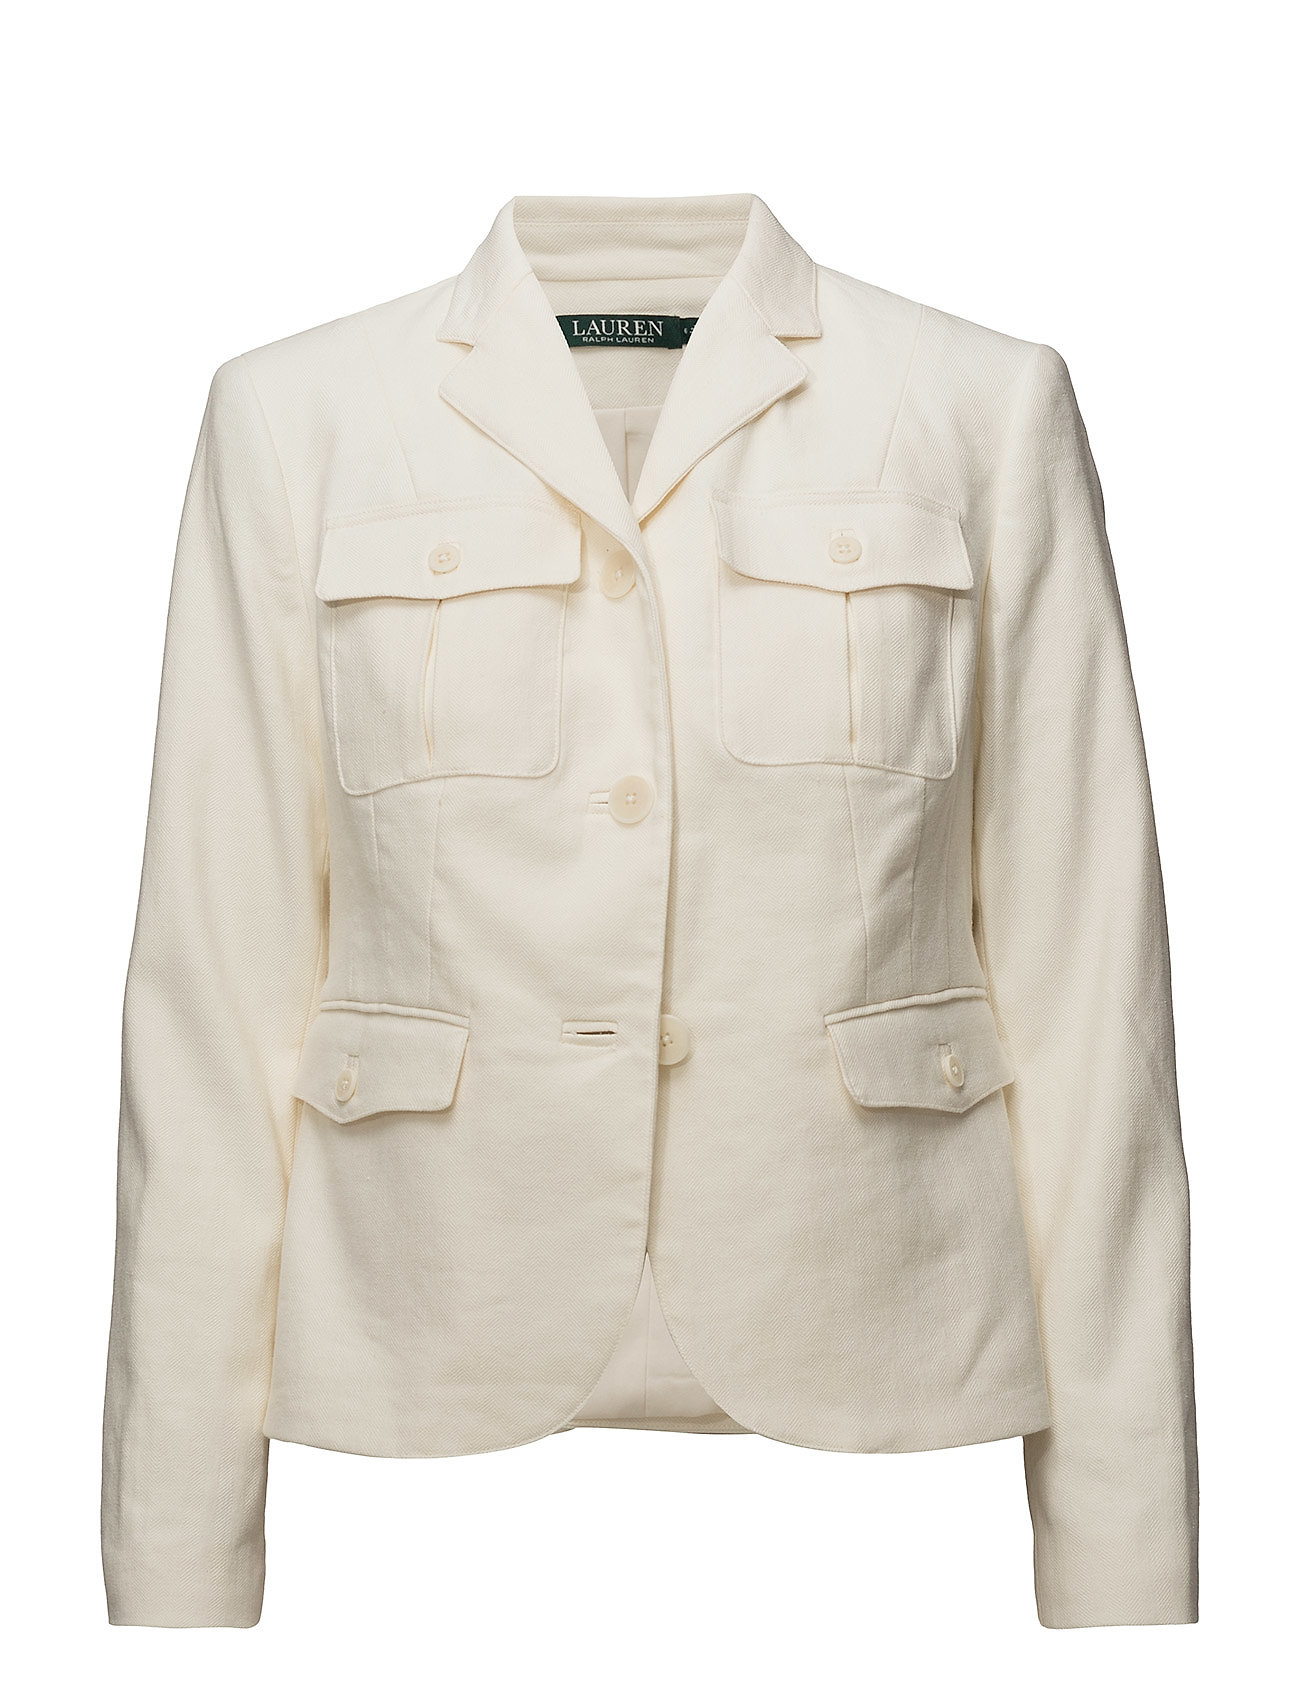 Lauren Ralph Lauren Herringbone Safari Jacket